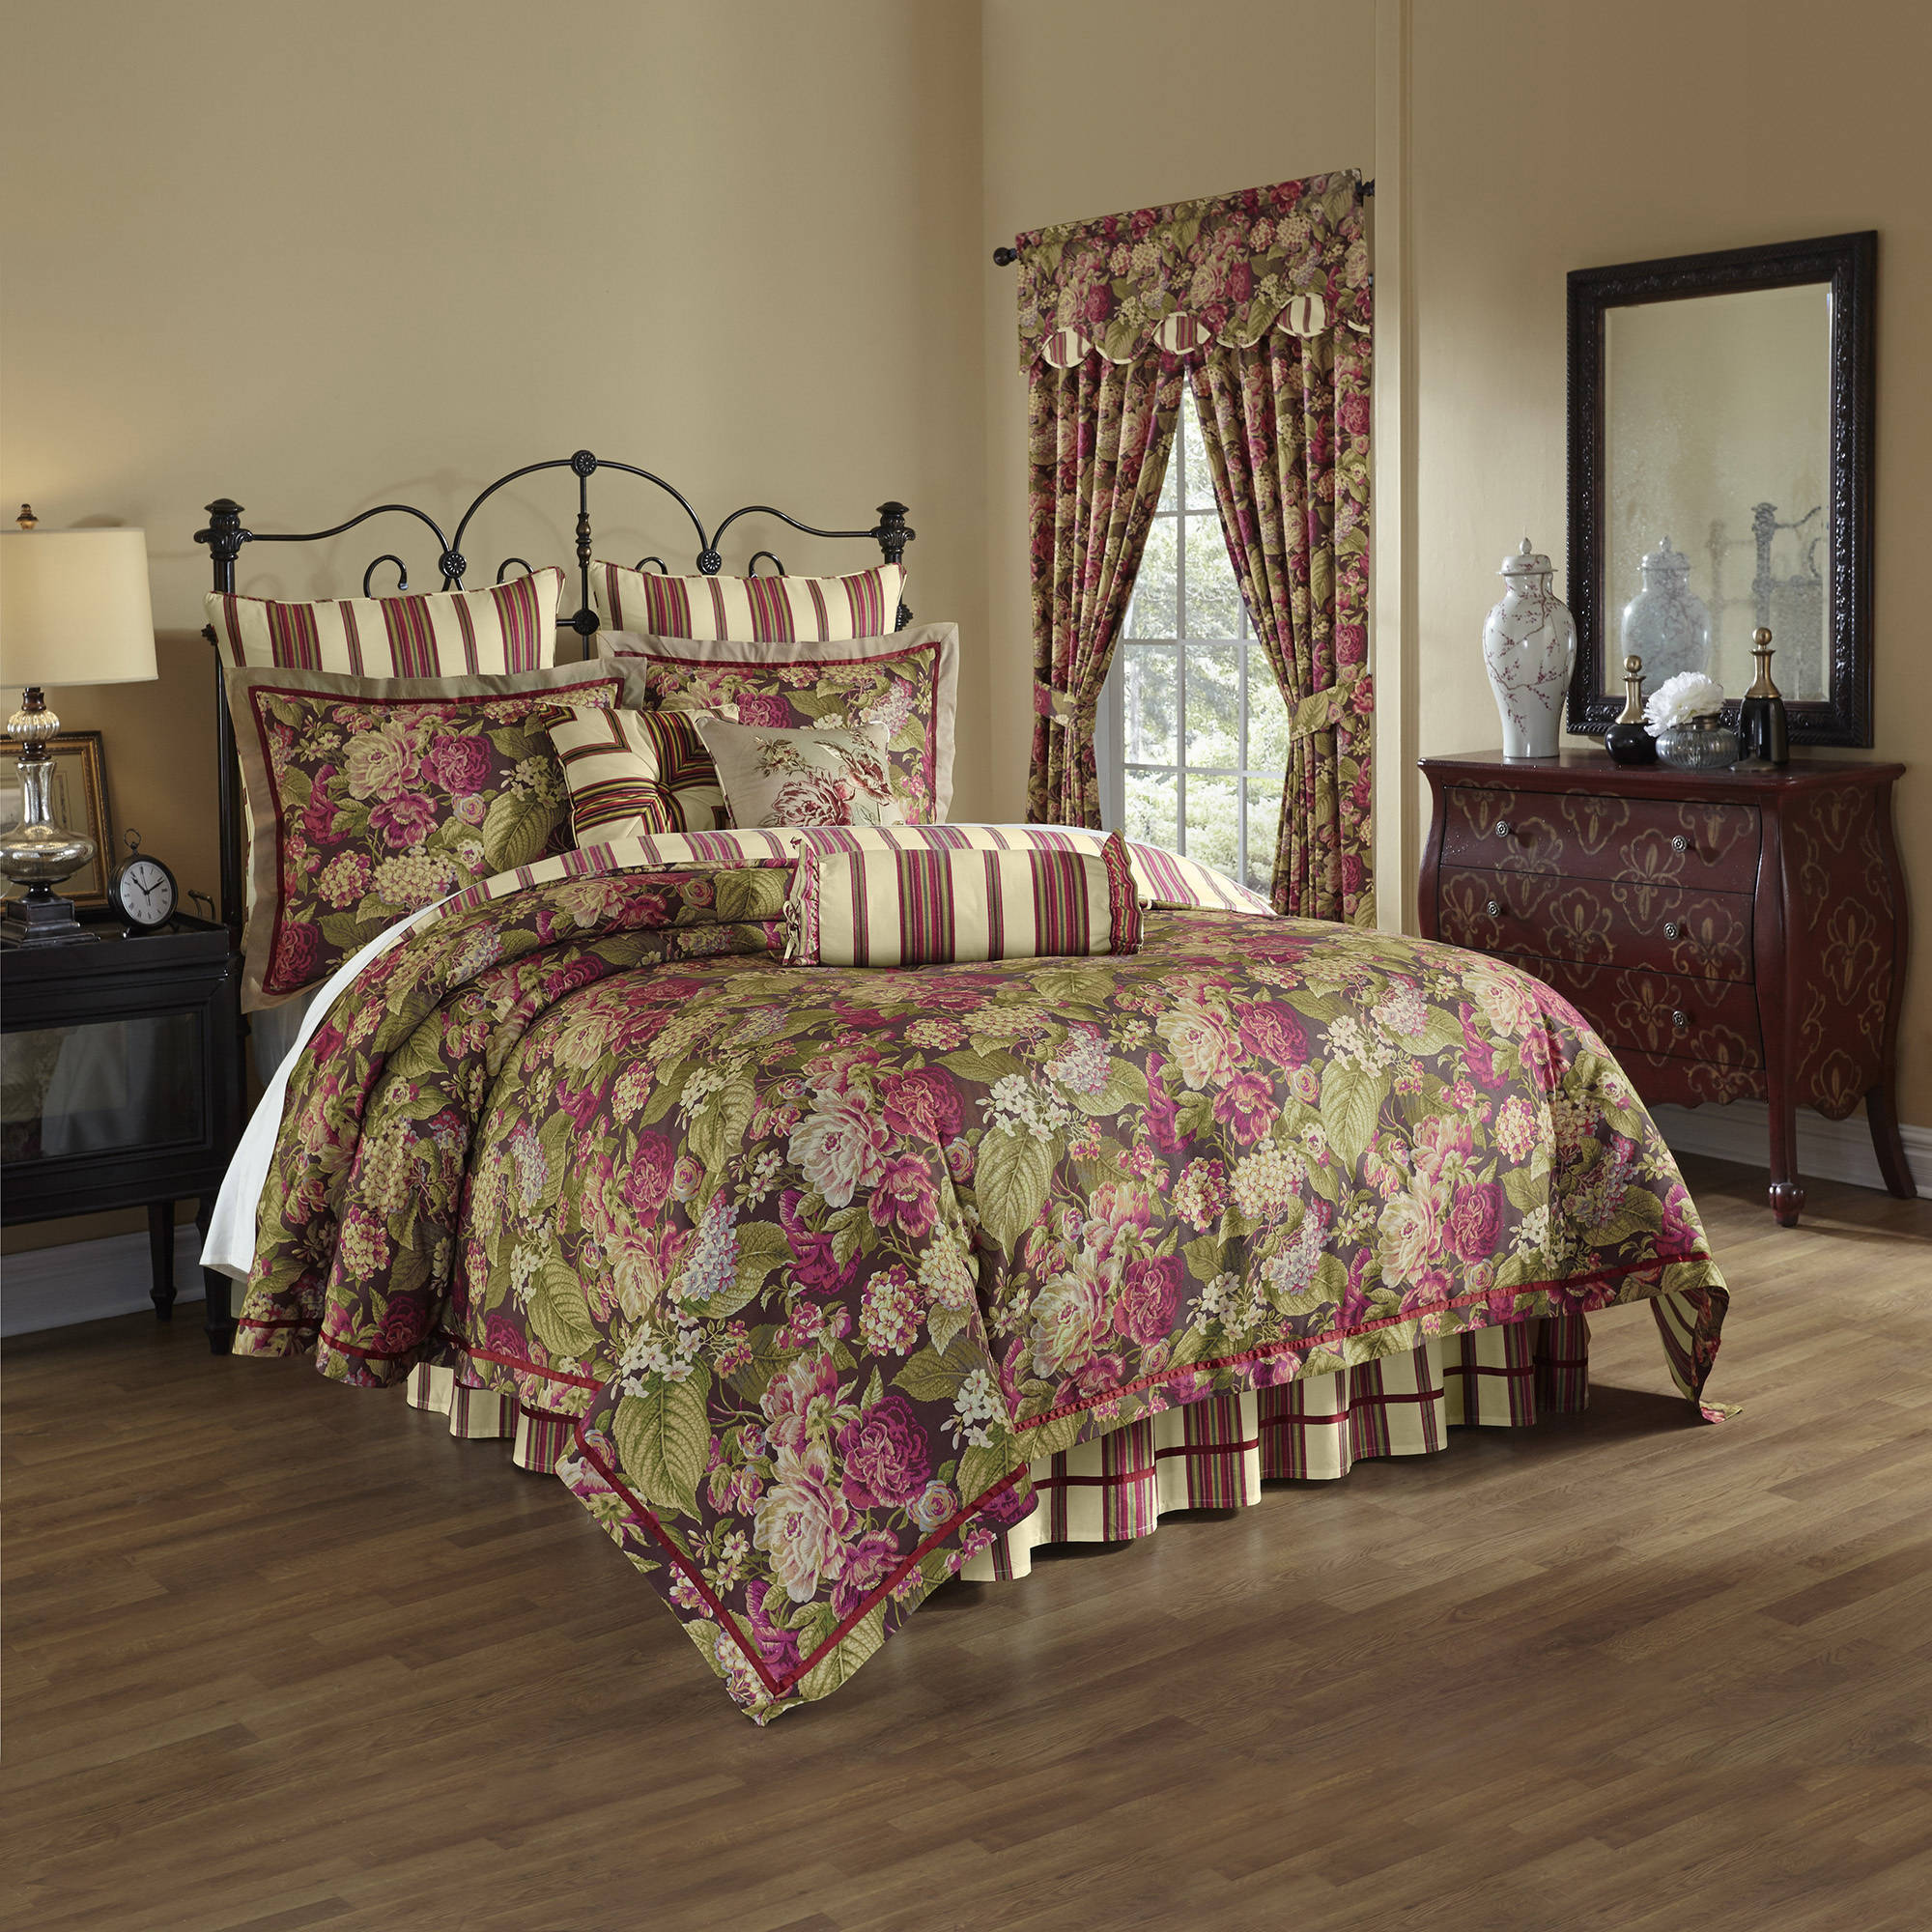 Waverly Floral Flourish Cordial 4 Piece Bedding Collection